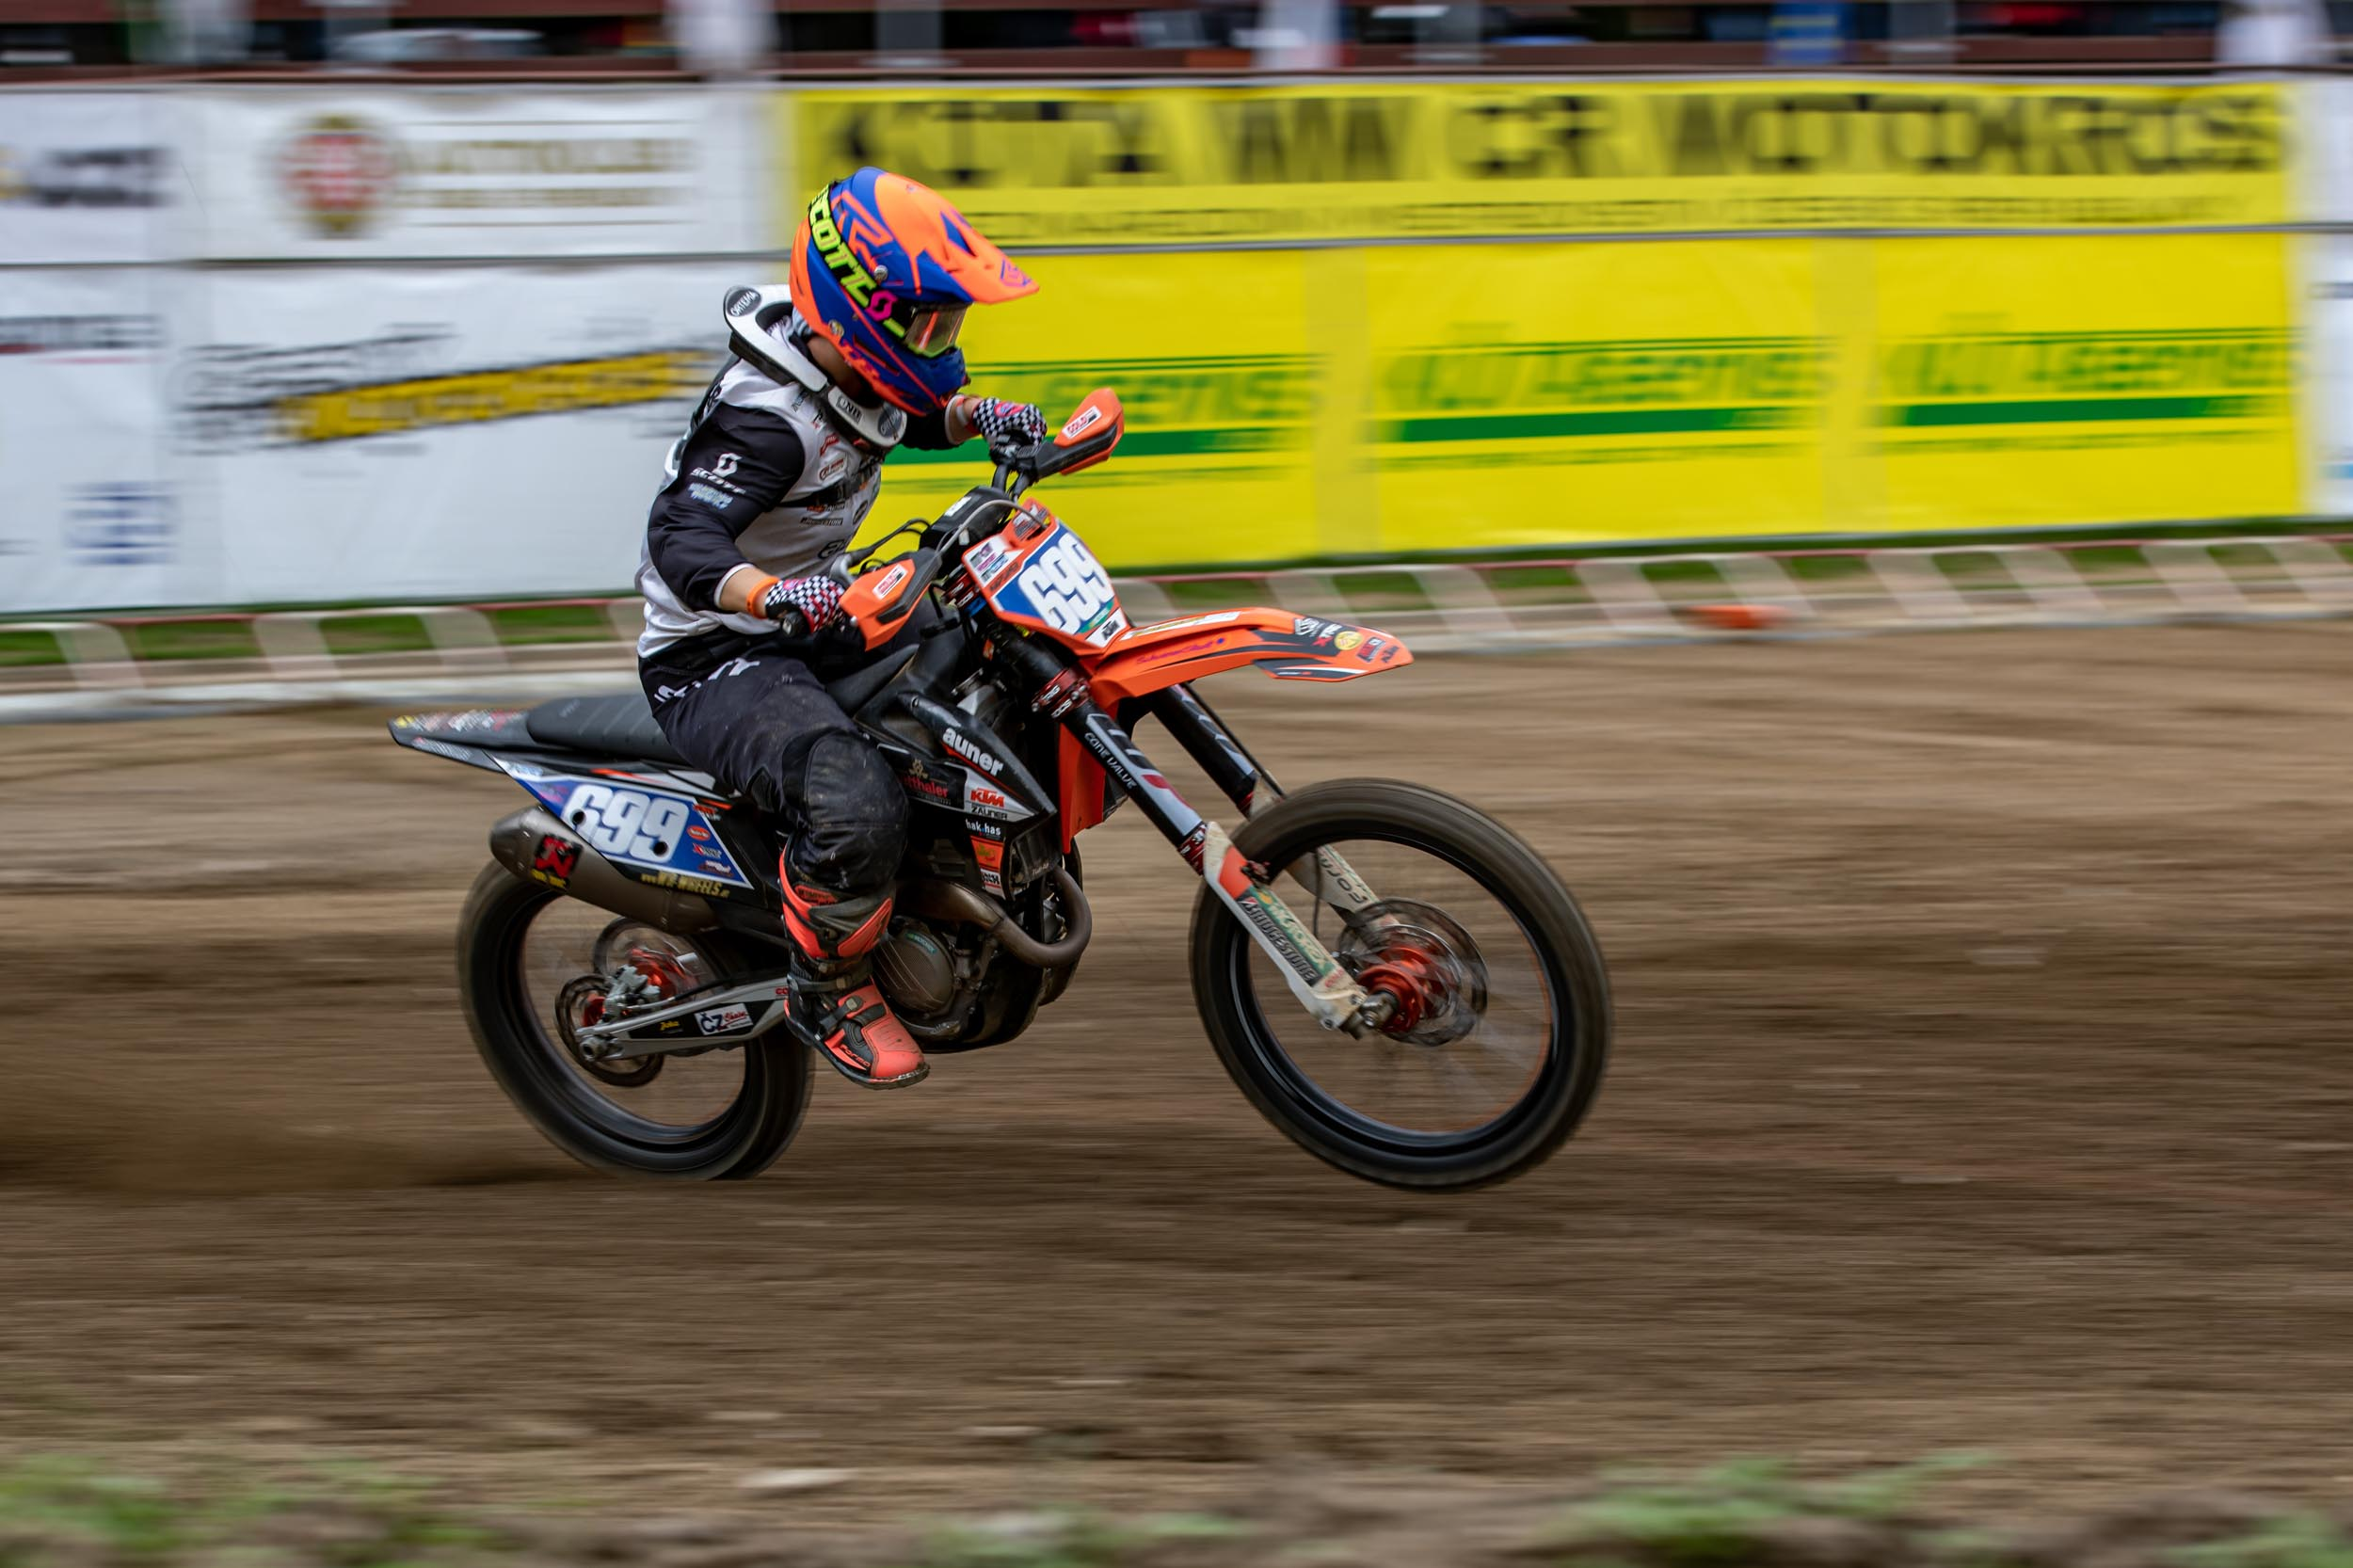 photo radeklavicka mx mmcr pacov 2020 1260